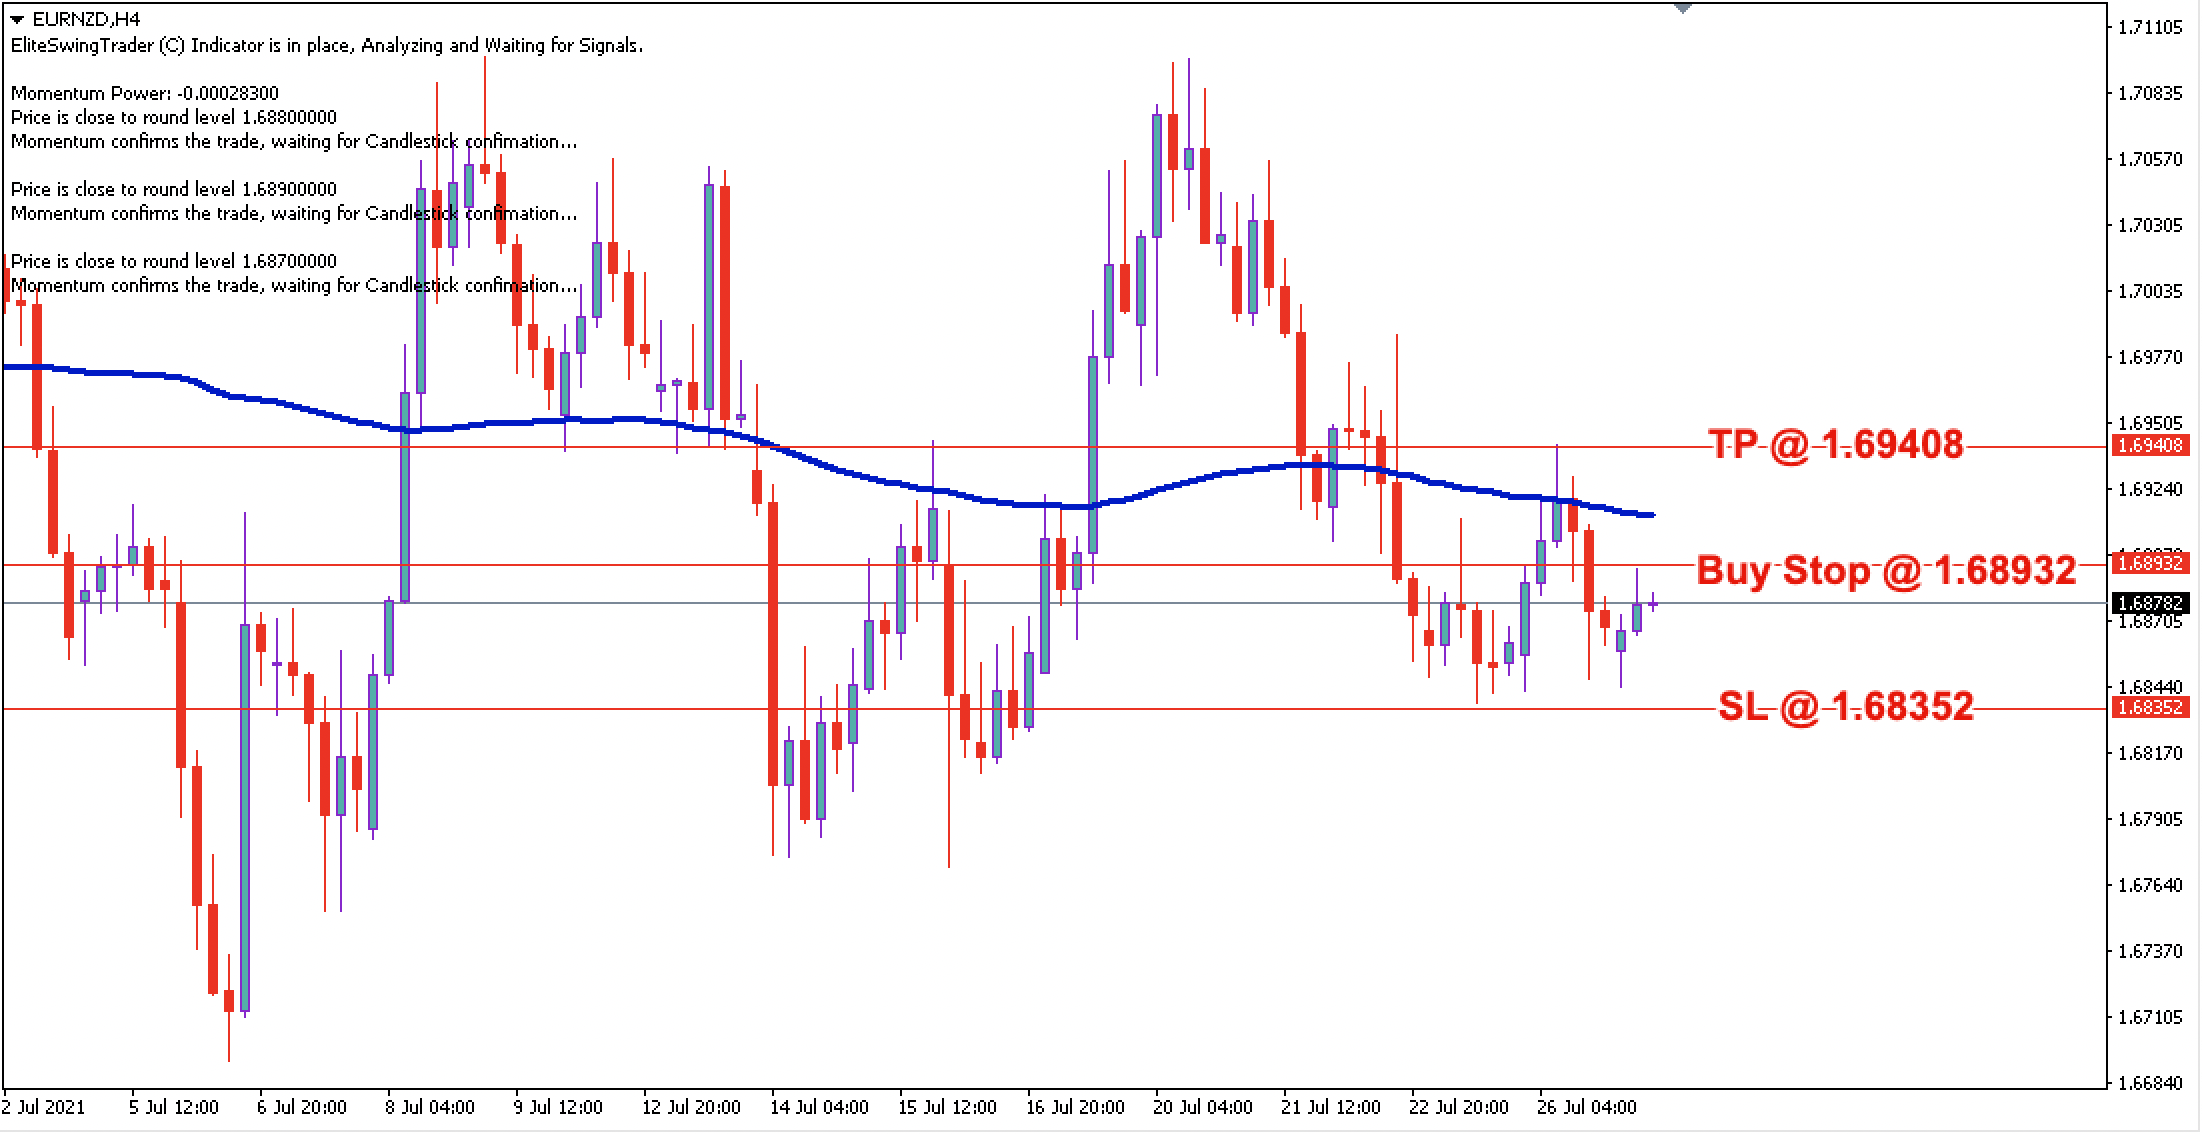 EUR/NZD Daily Price Forecast – 27th July 2021